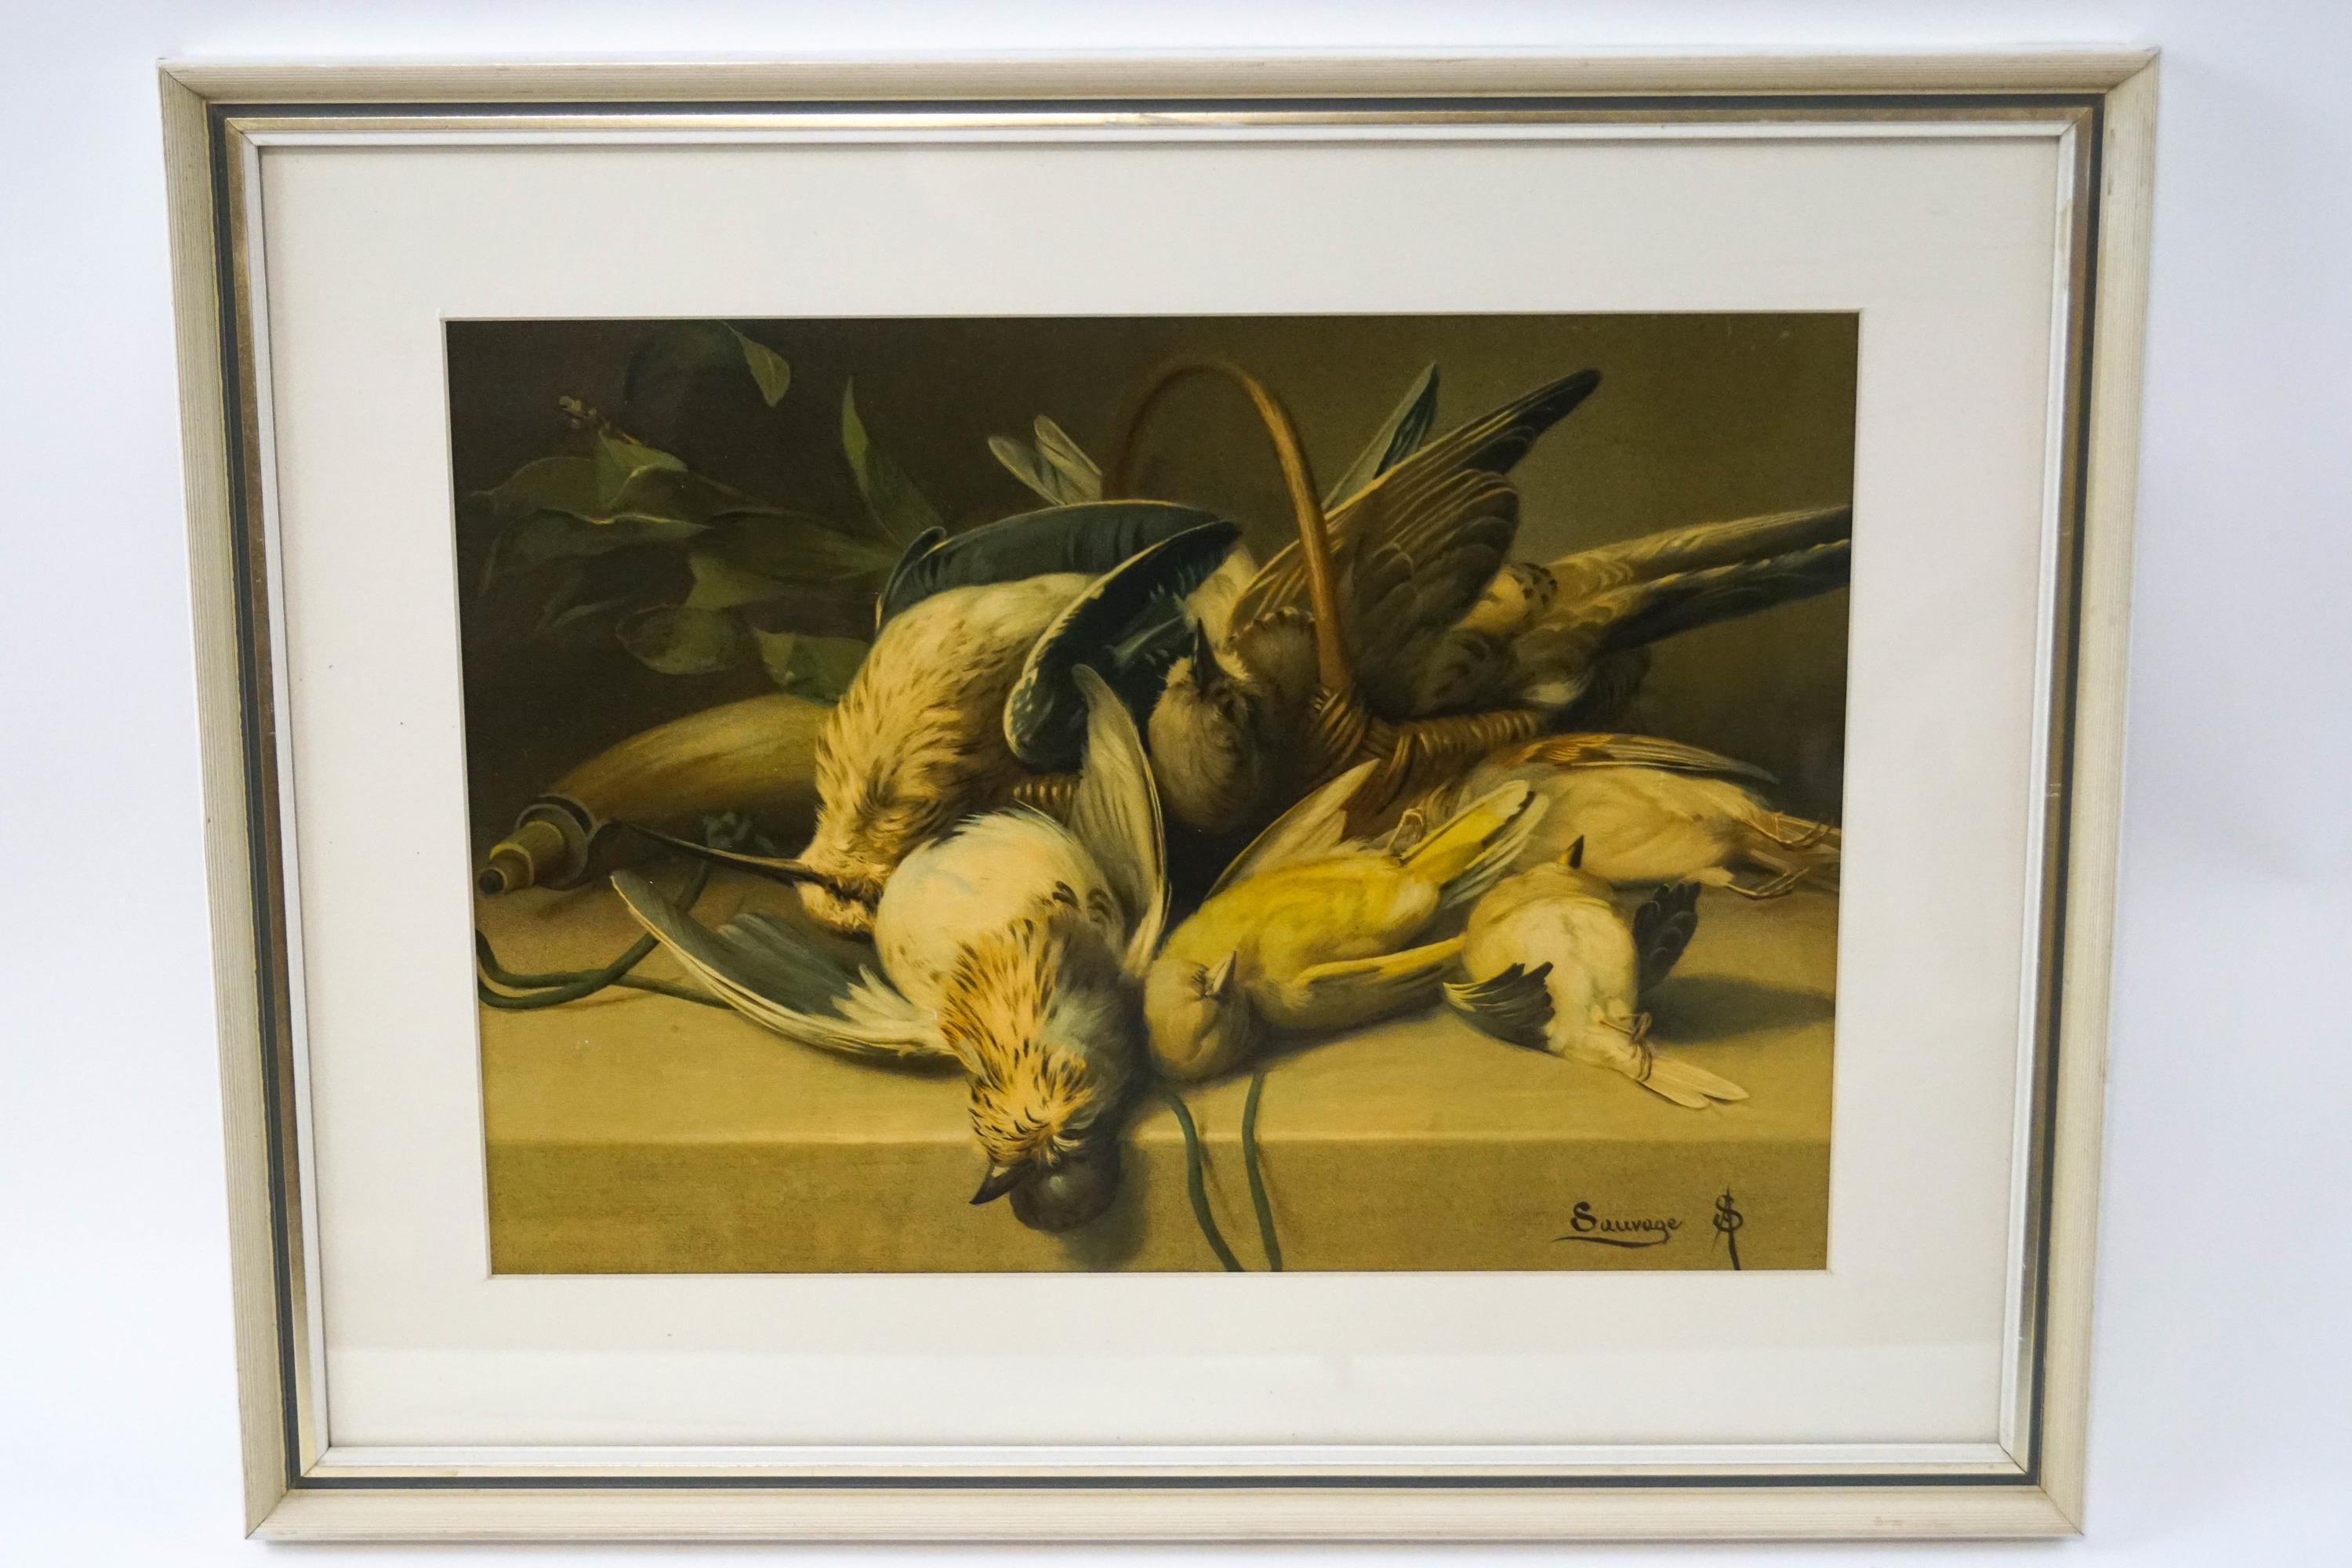 Lot 8 - After Arsene Sauvage (19th century French) 'Dead Gamebirds' Early 20th century print on board 25cm